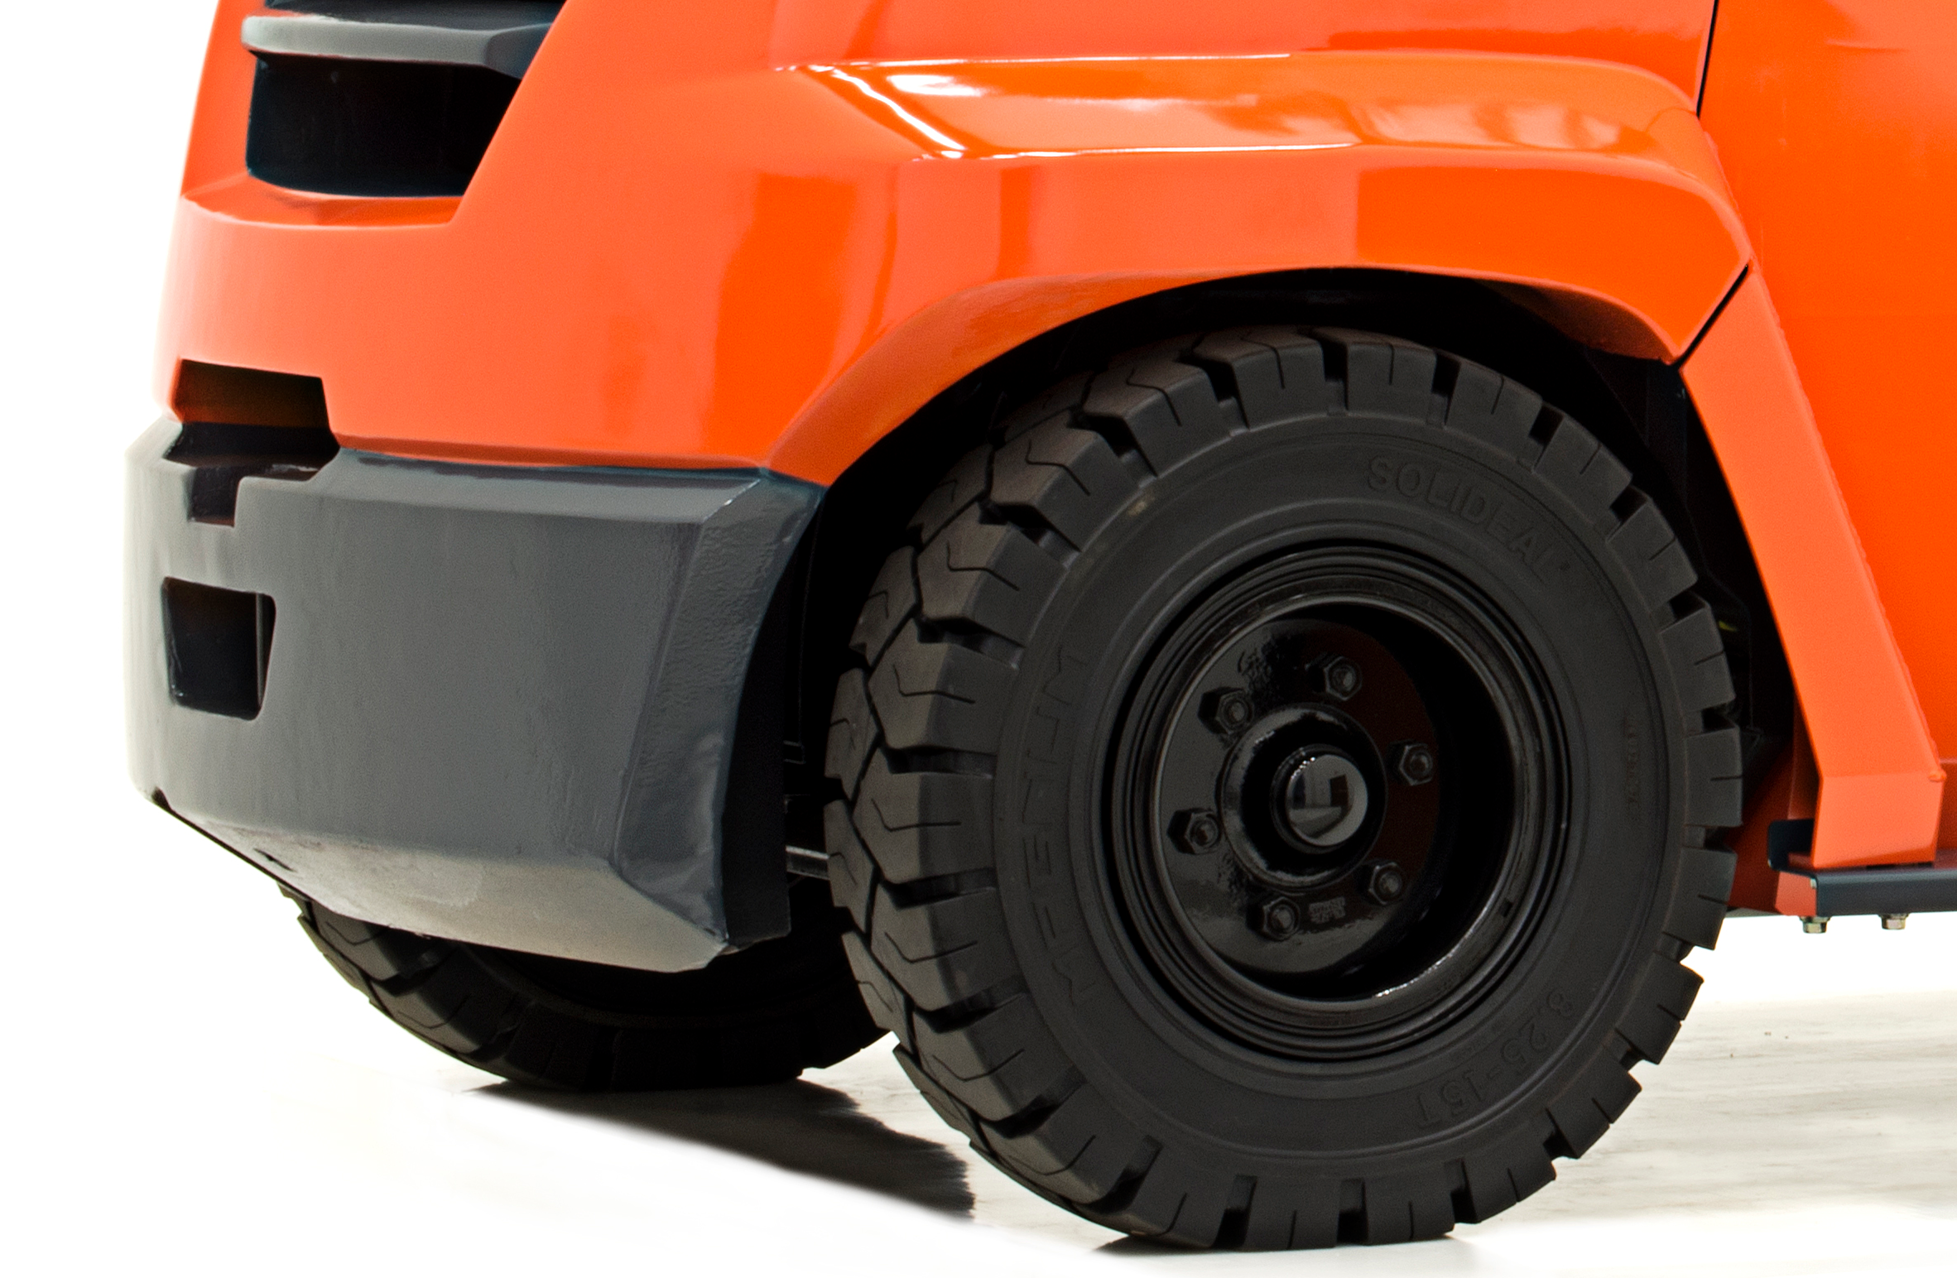 Close-up image of back tires of Toyota's Large IC Pneumatic forklift.